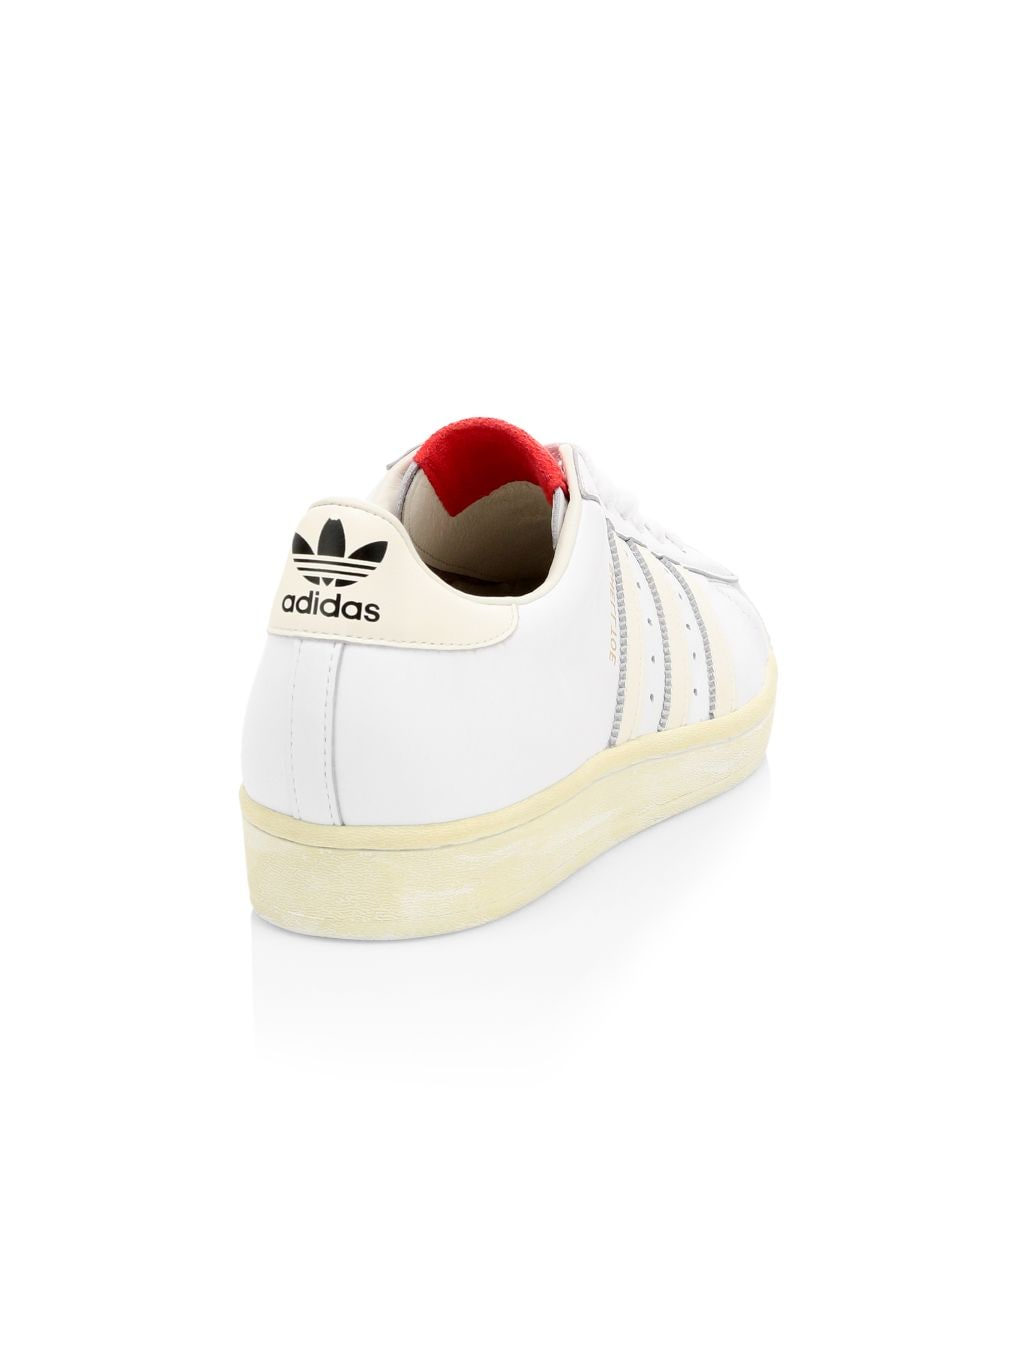 Adidas Shell-Toe Leather Sneakers